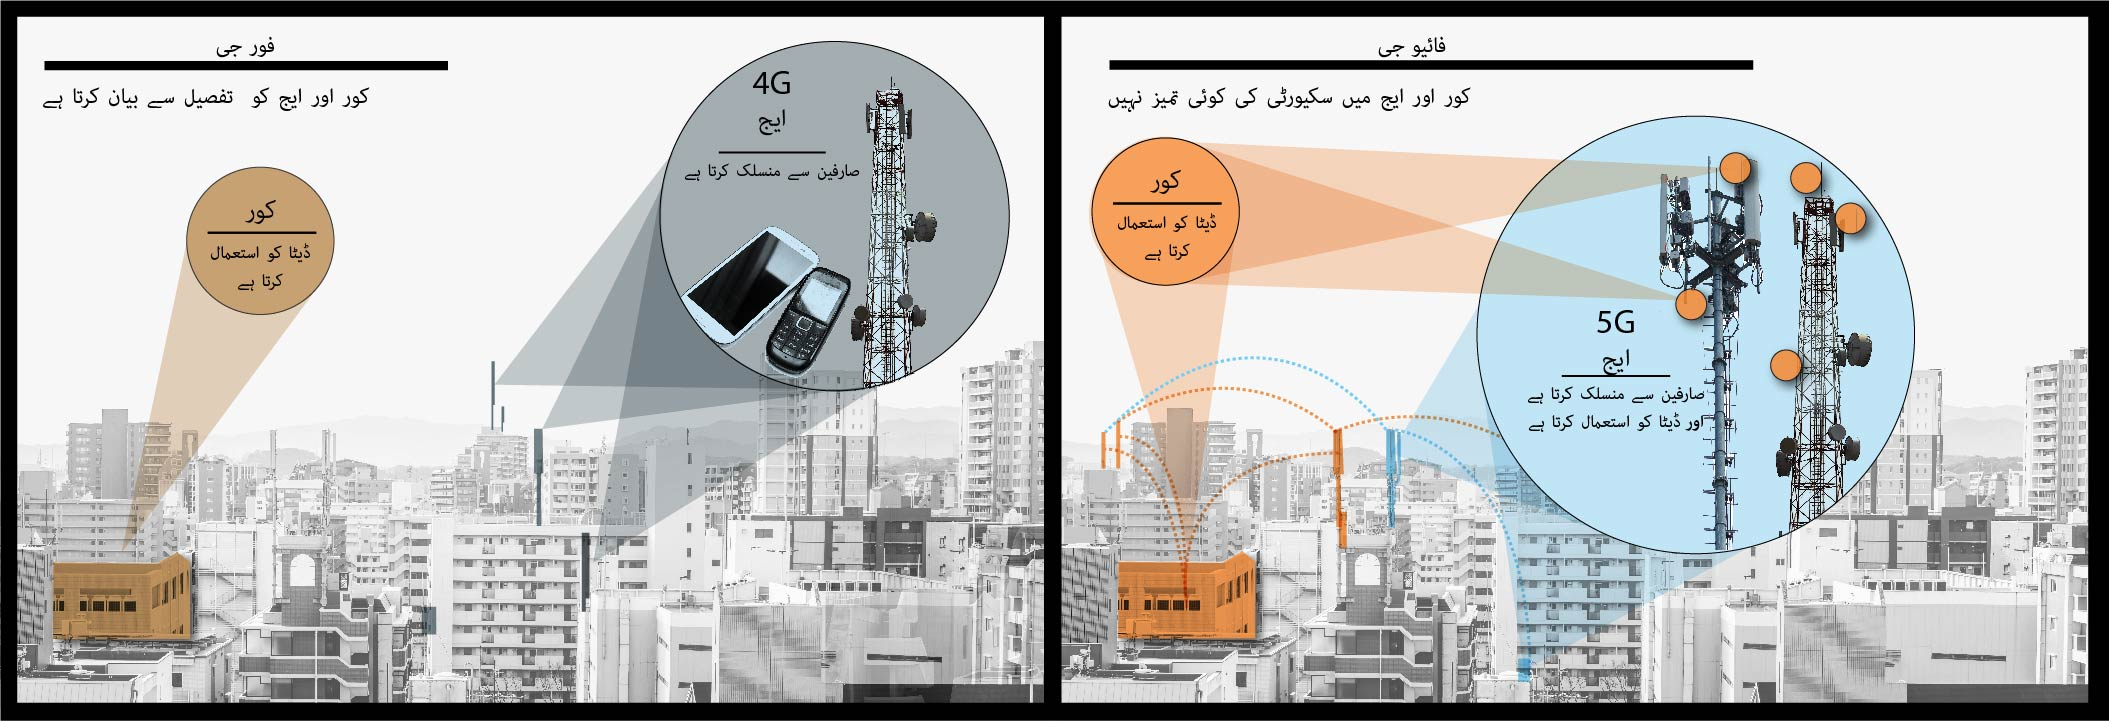 Infographic with cityscapes and text comparing 4G and 5G networks (State Dept./S. Gemeny Wilkinson)